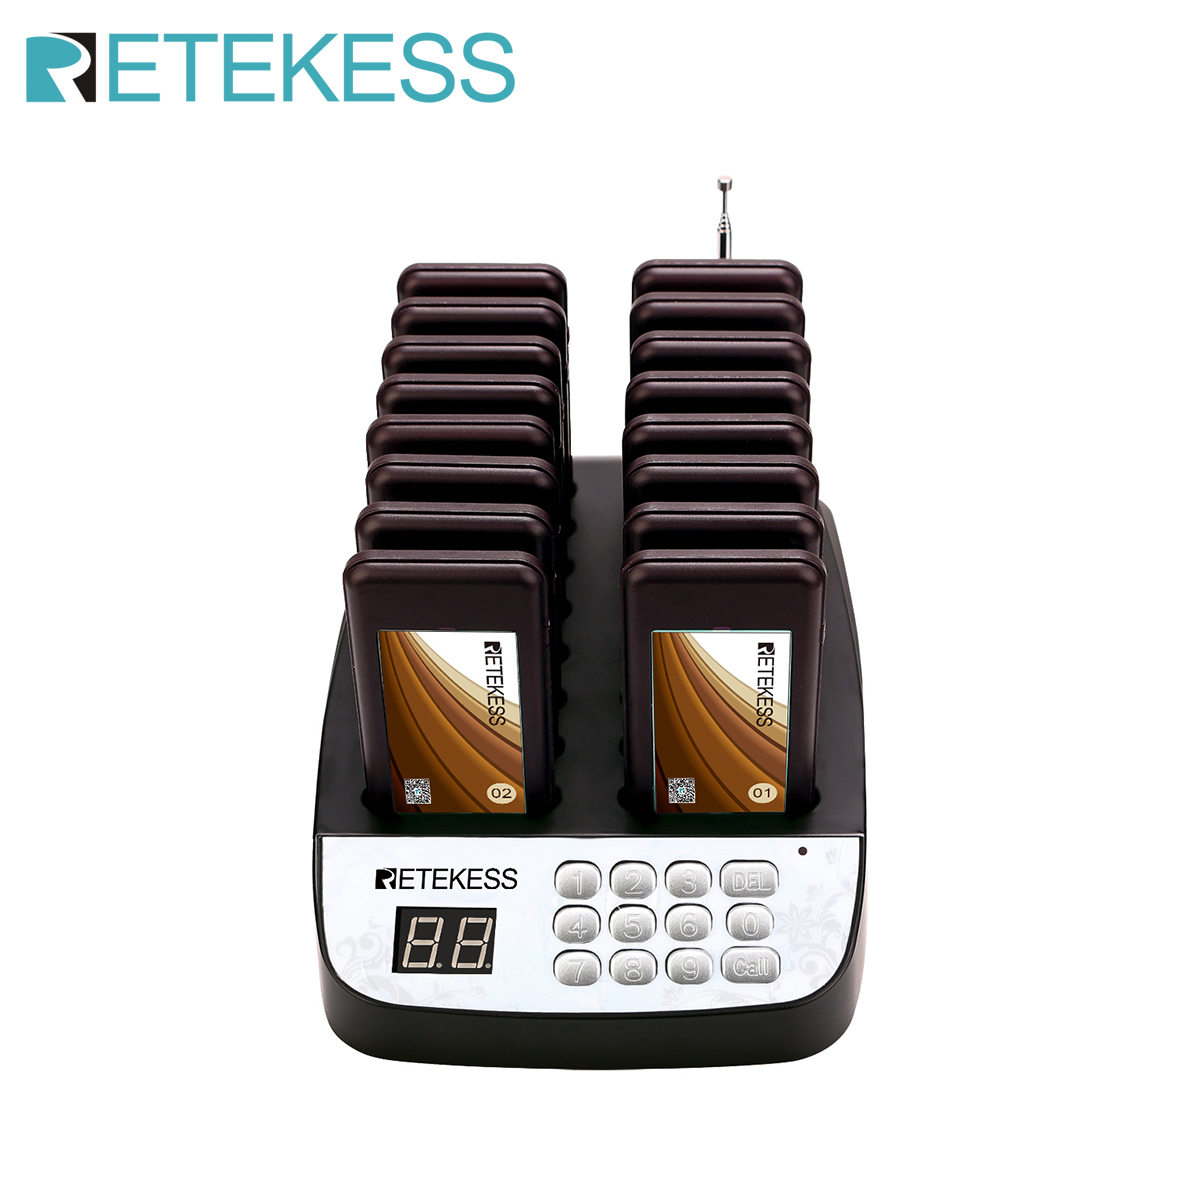 Retekess T113 Restaurant Pager Wireless Guest Paging Queuing System  Wireless Call Pagers For Restaurant Church Coffee Shop